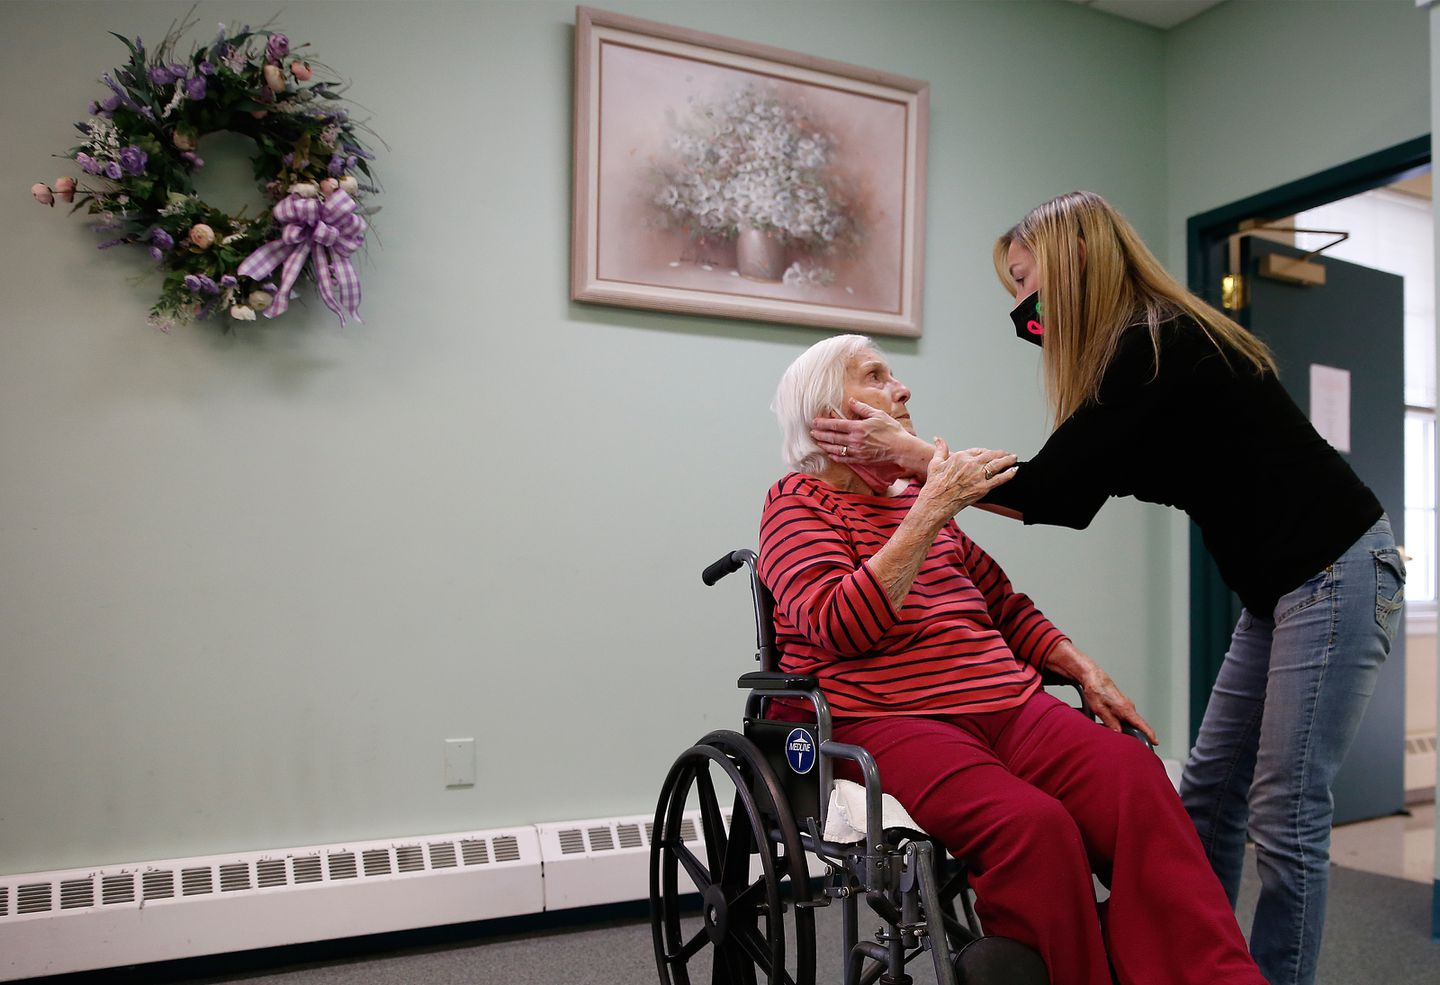 Kate Cunningham told her 88-year-old mother, Sheila McCabe, that she loves her after visiting with her at the Copley at Stoughton nursing home. McCabe recovered from COVID-19 and is now vaccinated.